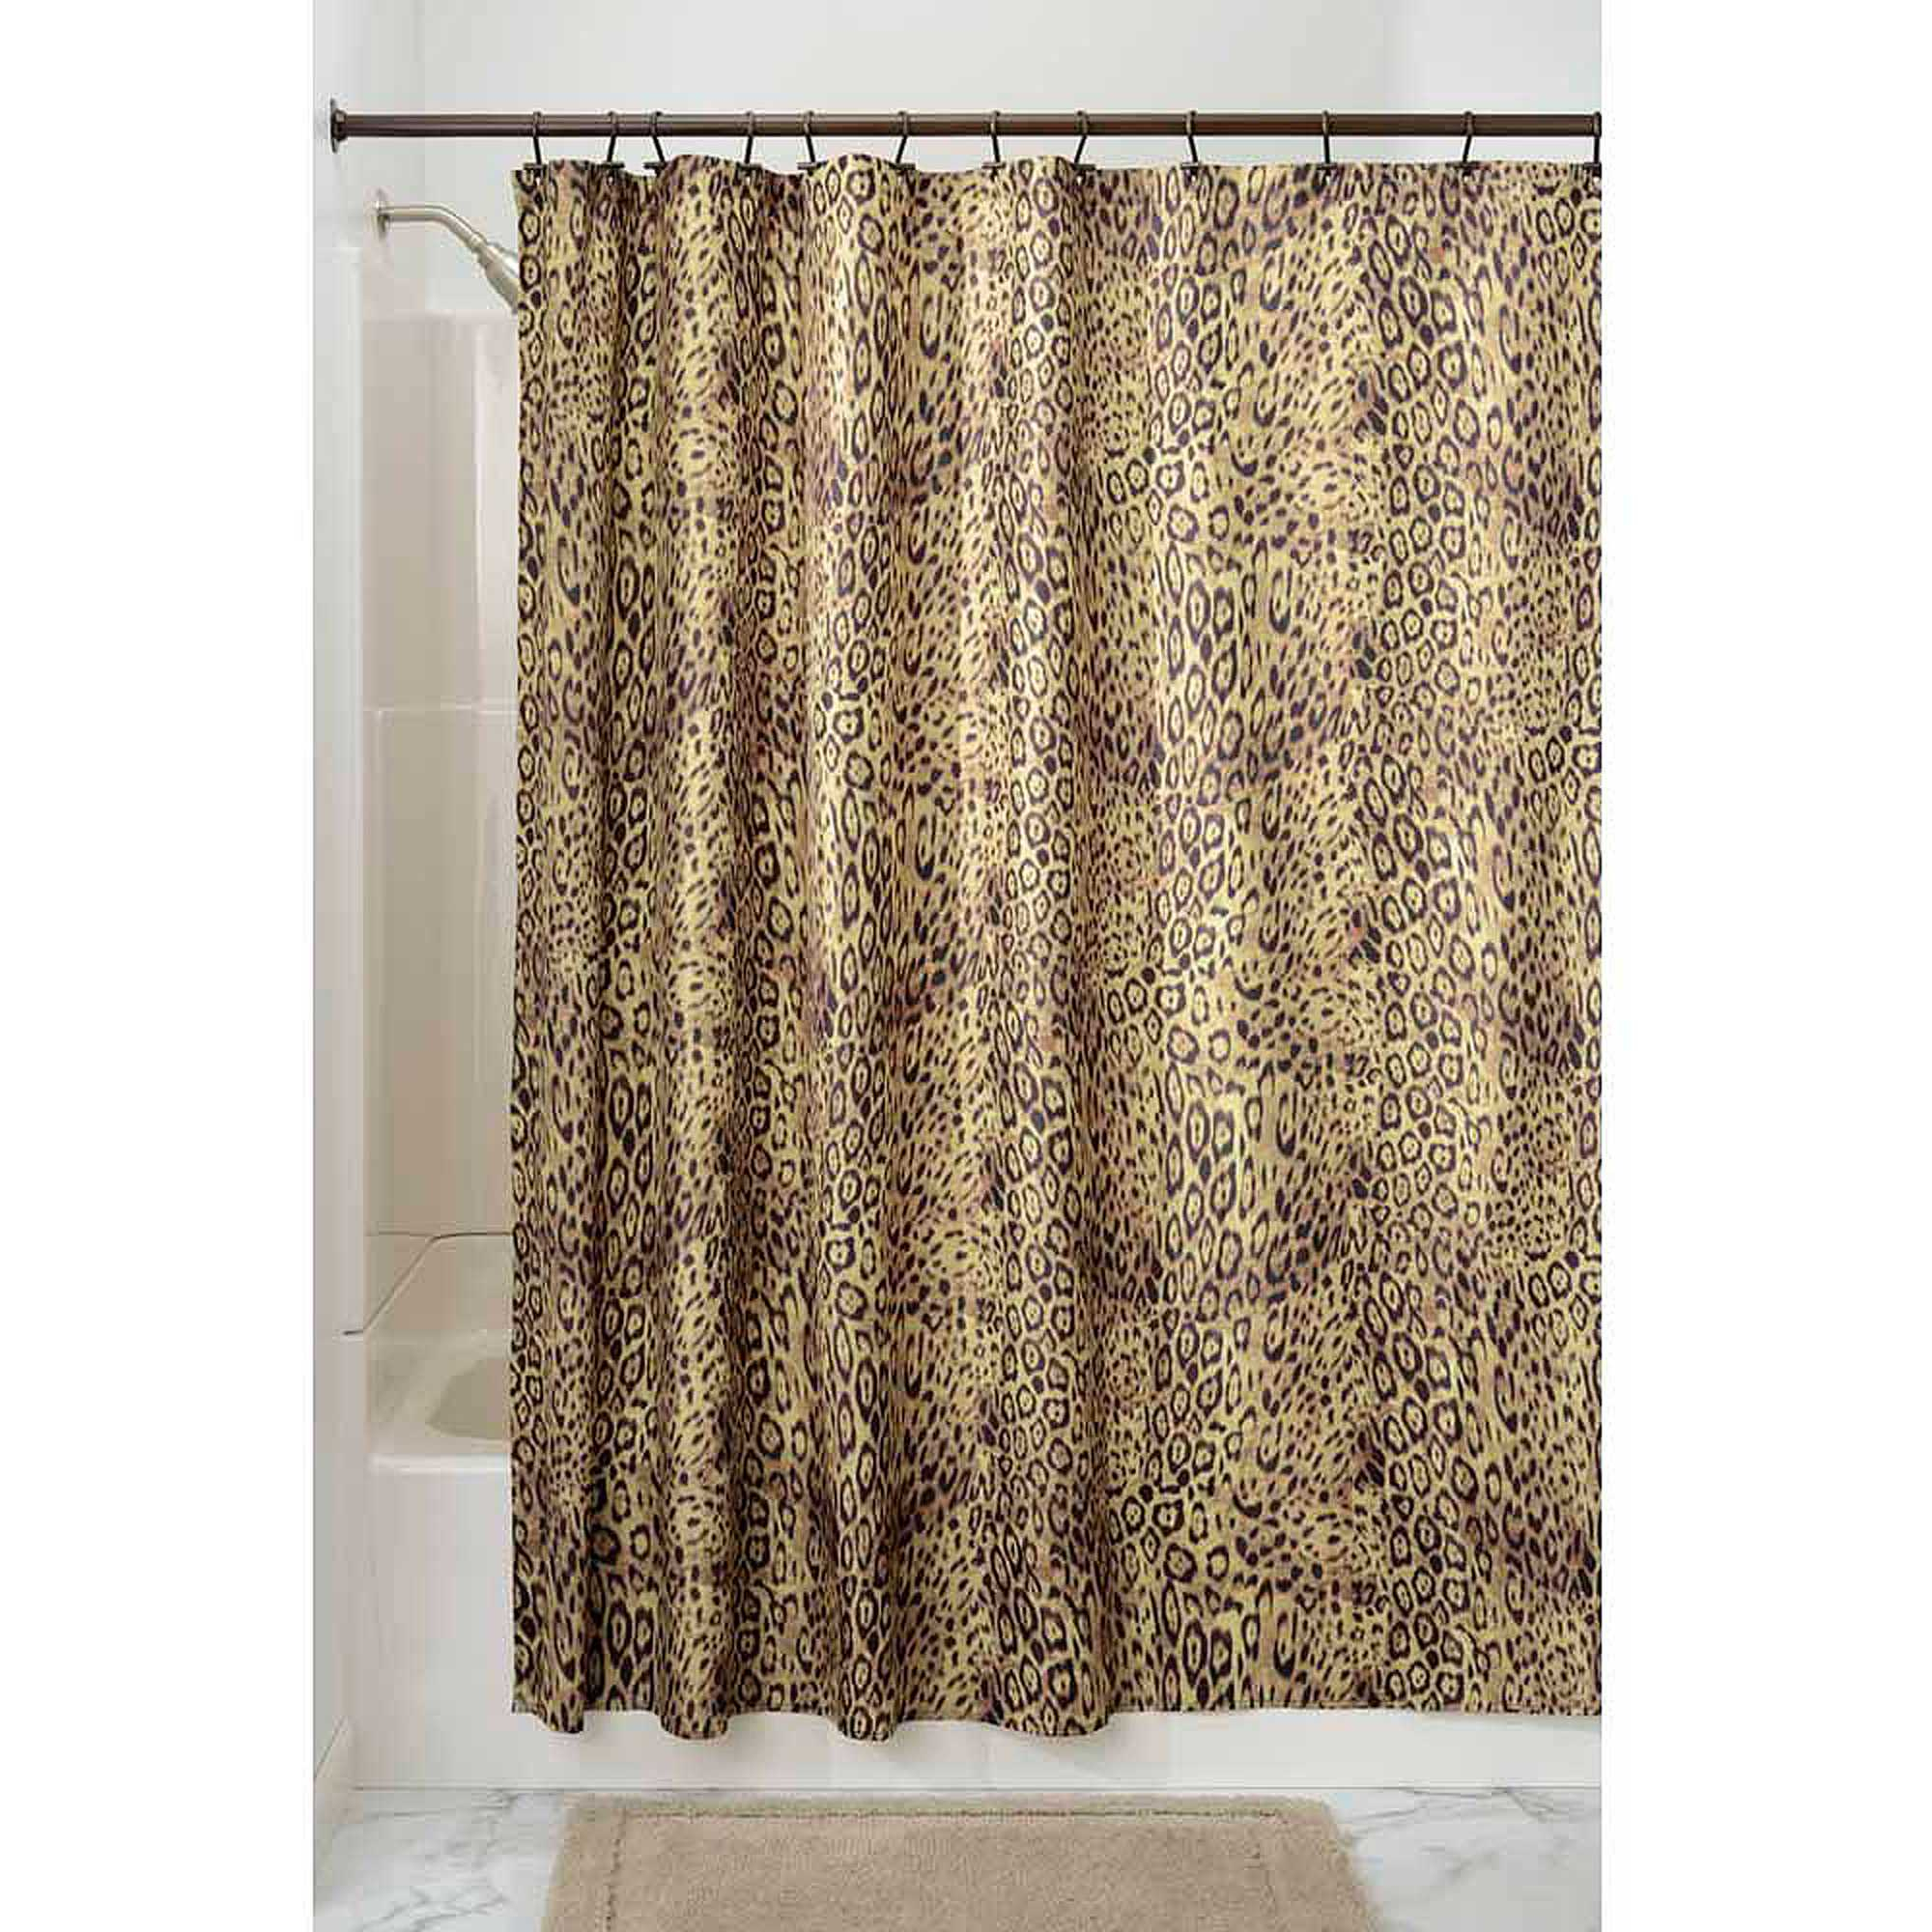 Excellent Nicole Miller Shower Curtains Gallery Bathtub For With Measurements 2000 X